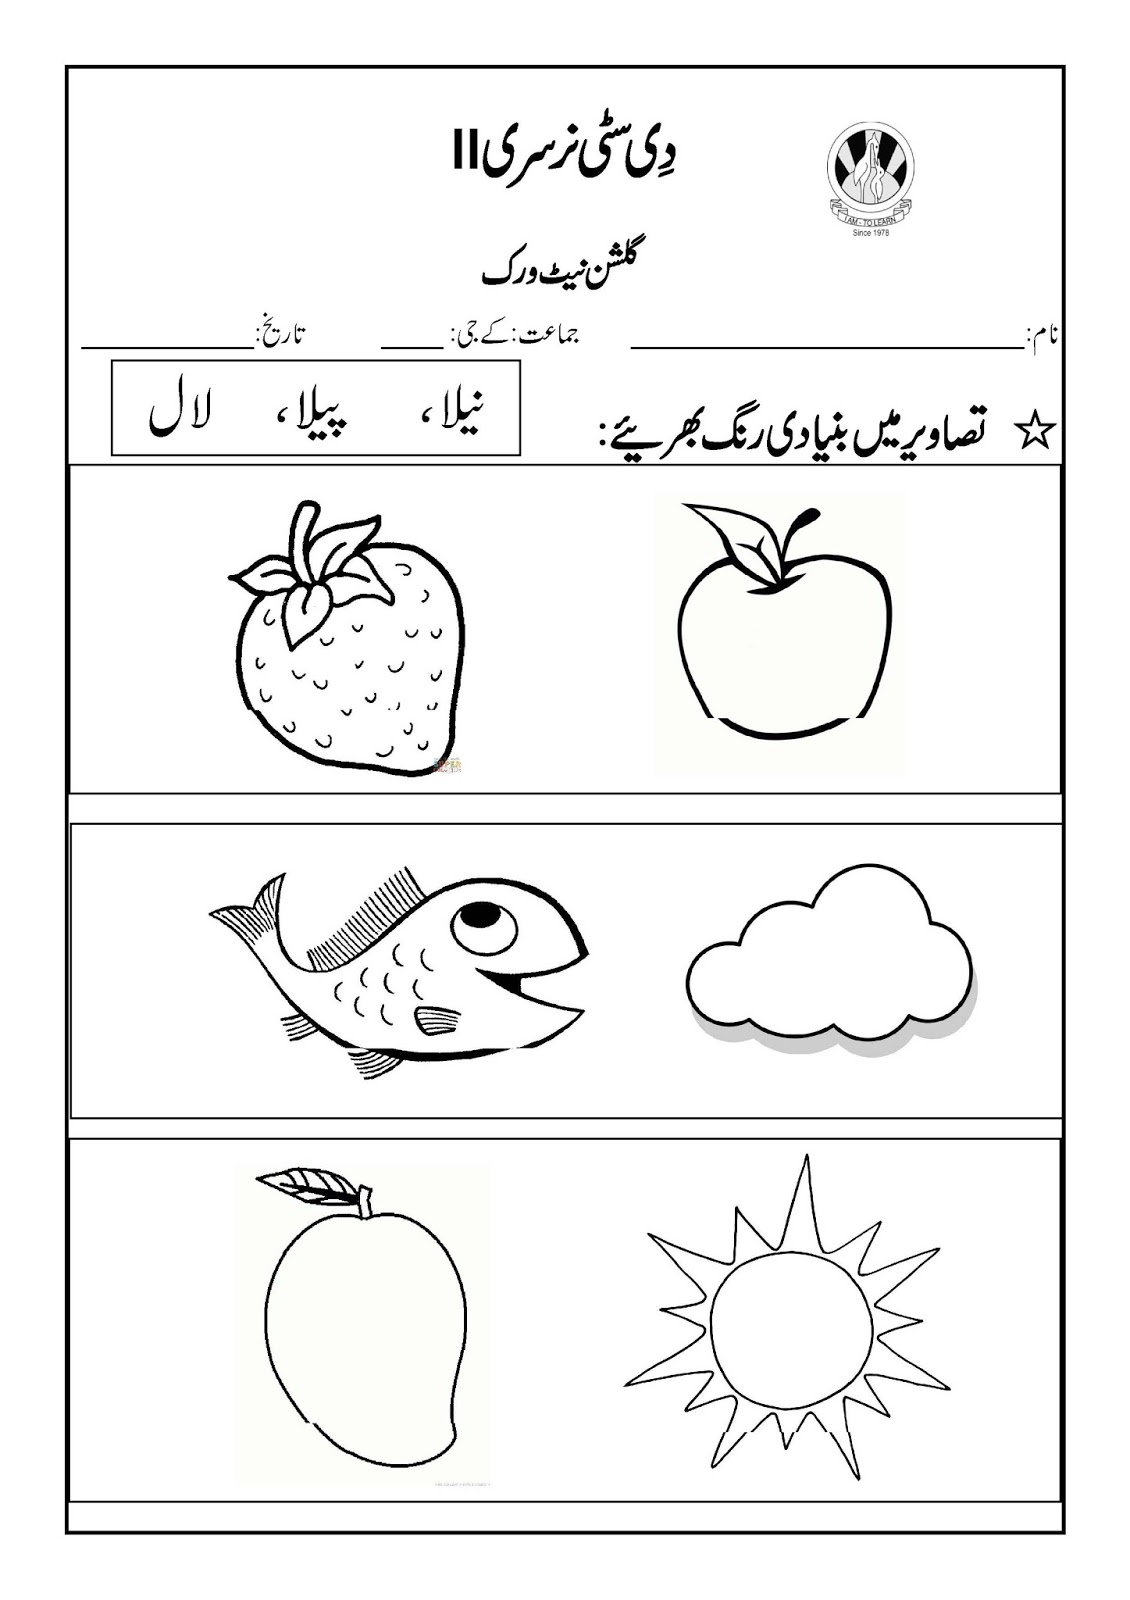 urdu worksheets - Worksheet For Nursery